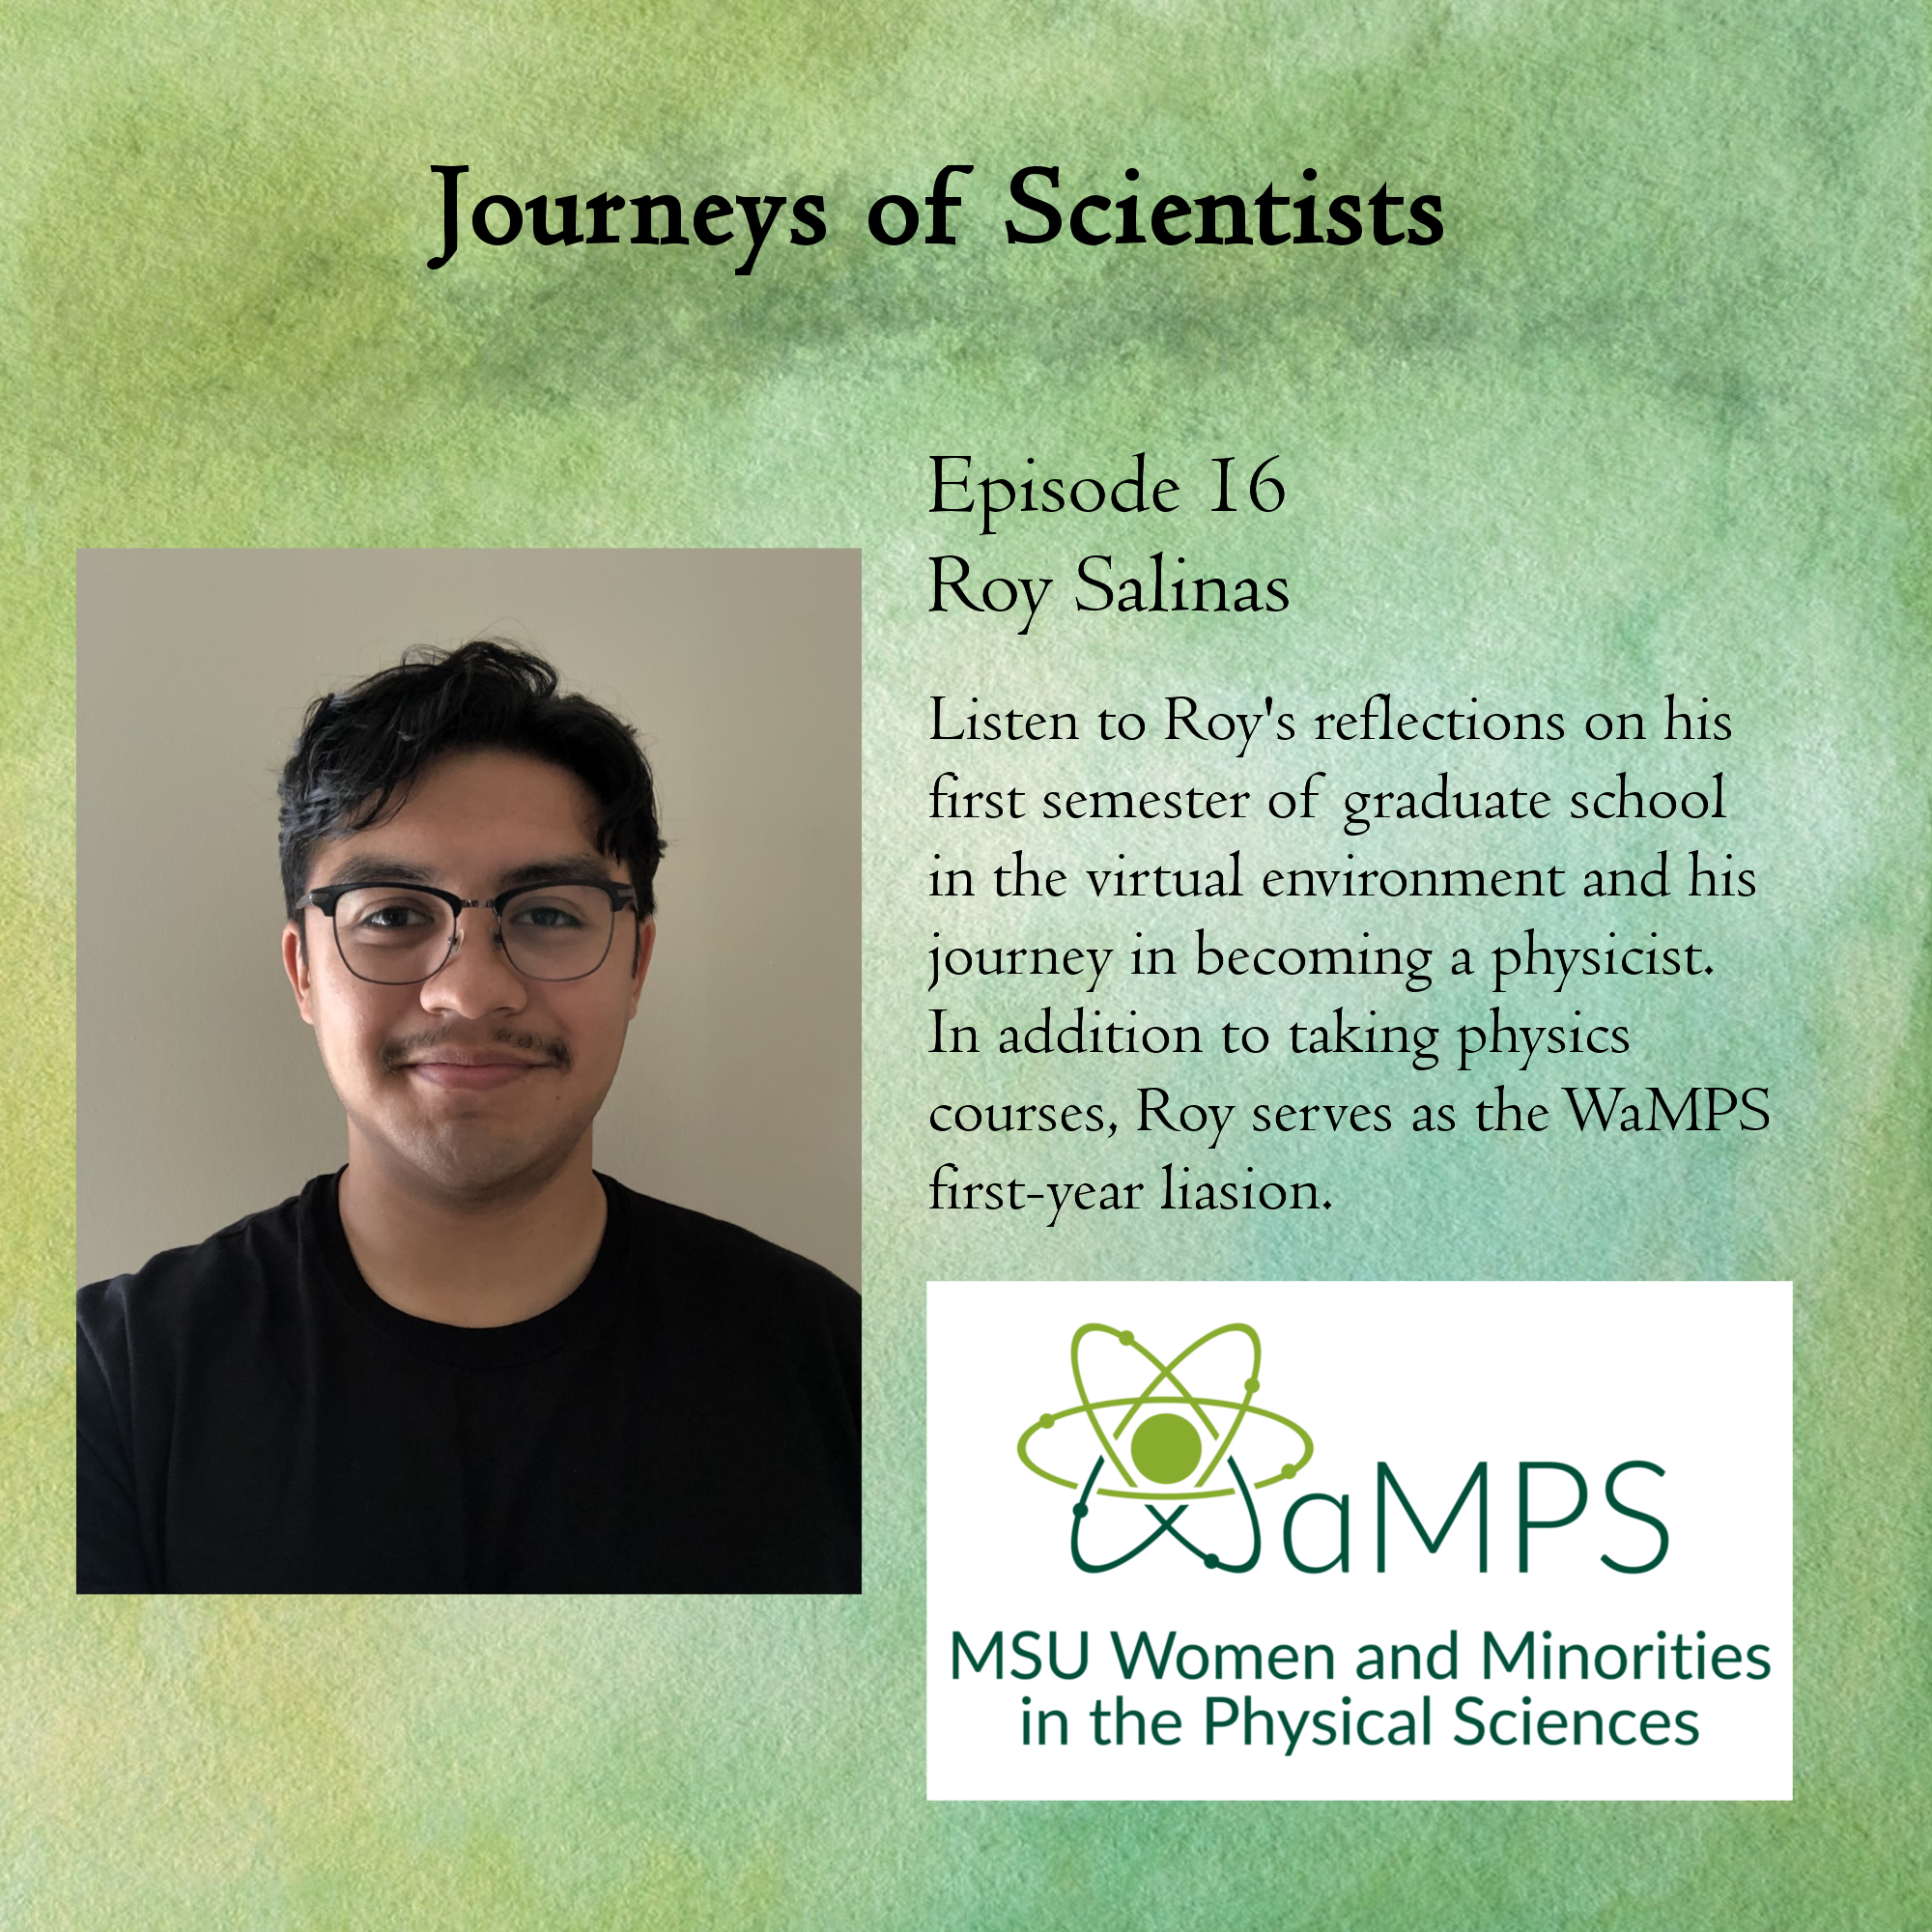 Roy is a first year physics PhD student at MSU interested in experimental nuclear physics. He also serves at the 1st-year student liaison for WaMPS. Roy talks about how his first semester of graduate school went while everything is virtual, as well as what got him interested in physics and his academic career path.